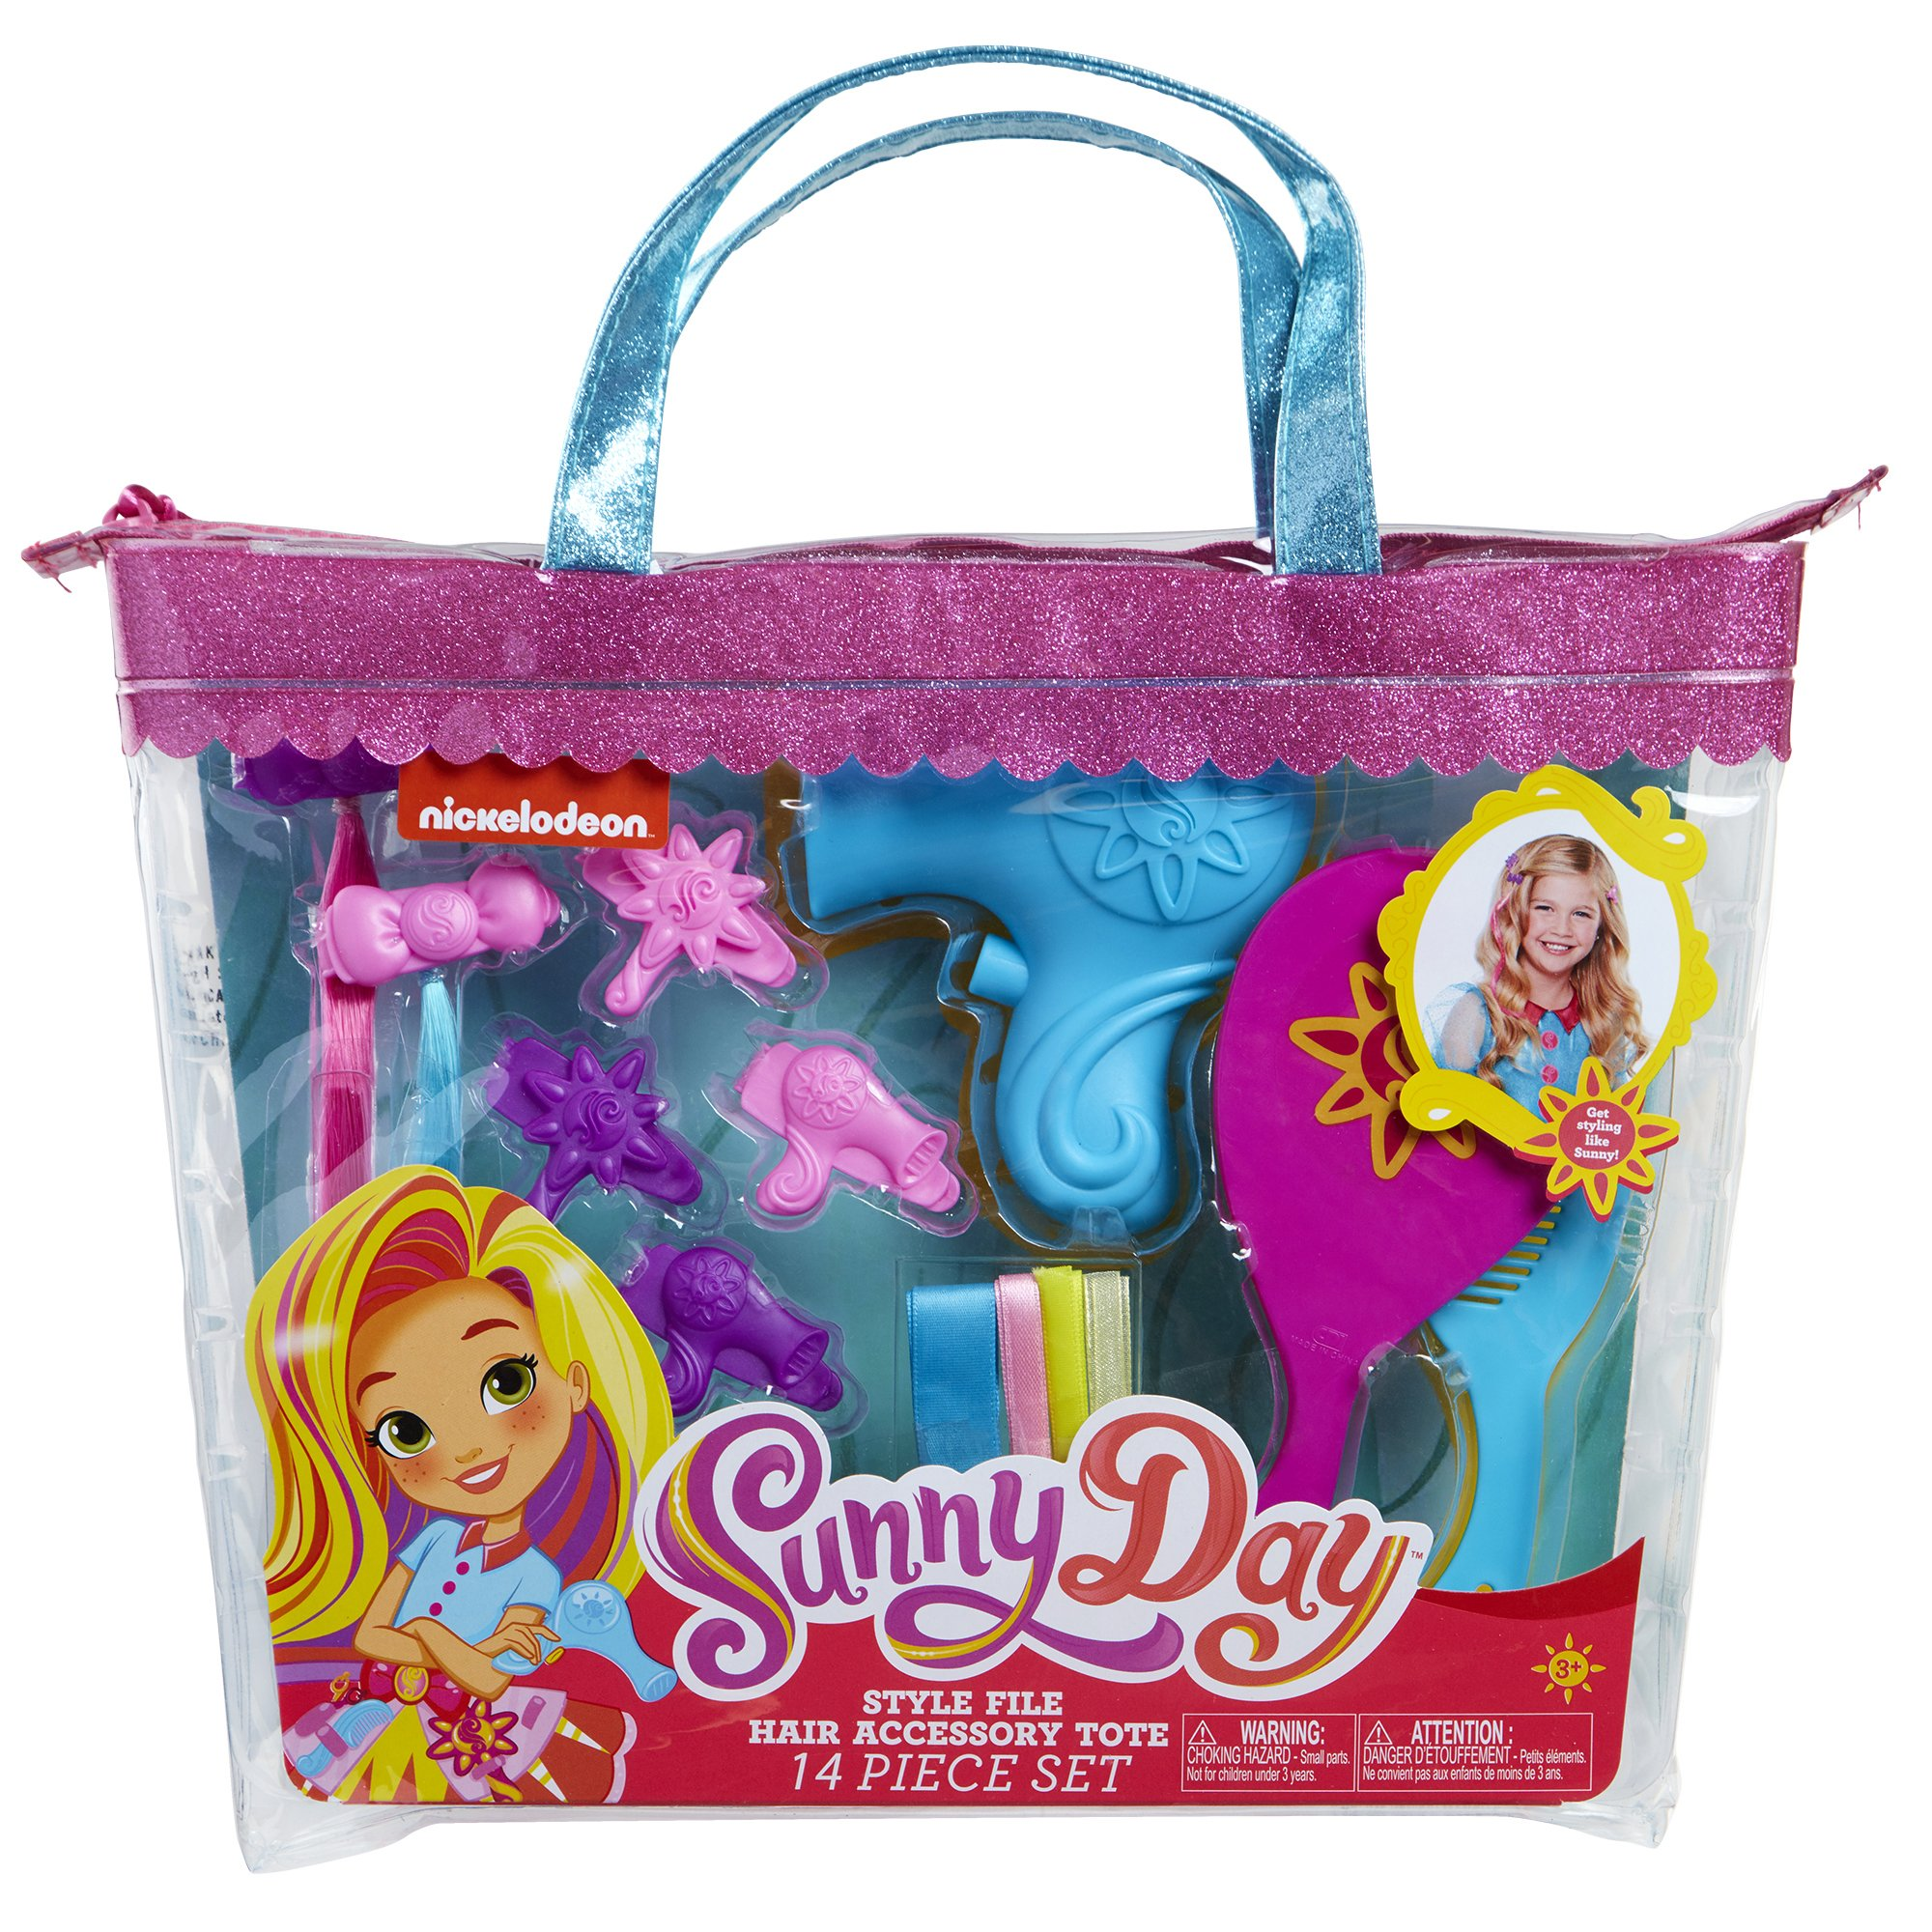 Sunny Day Accessory Tote Hair Style File, Pink/Blue